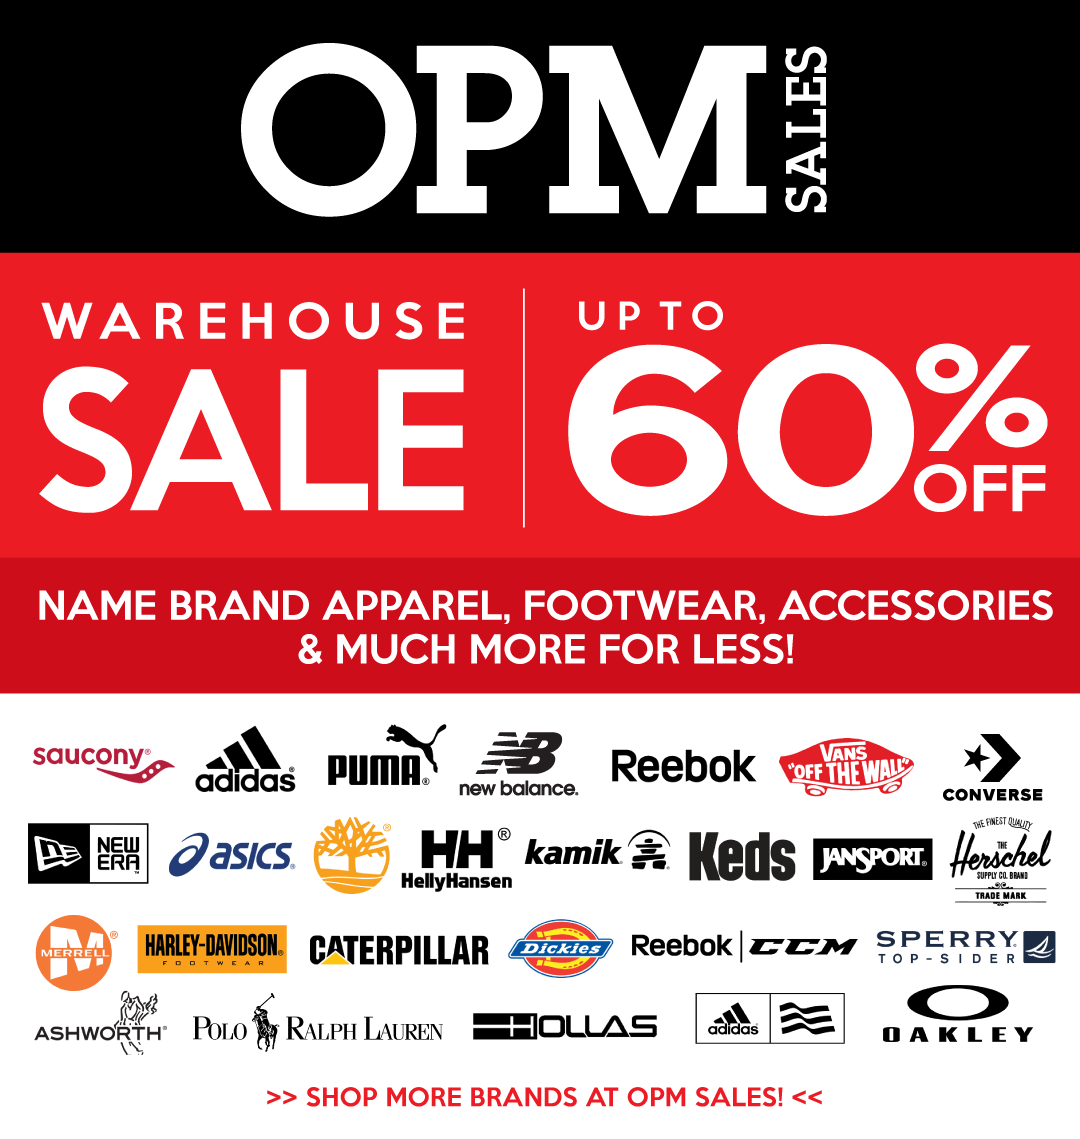 name brand apparel, footwear, accessories and more for less